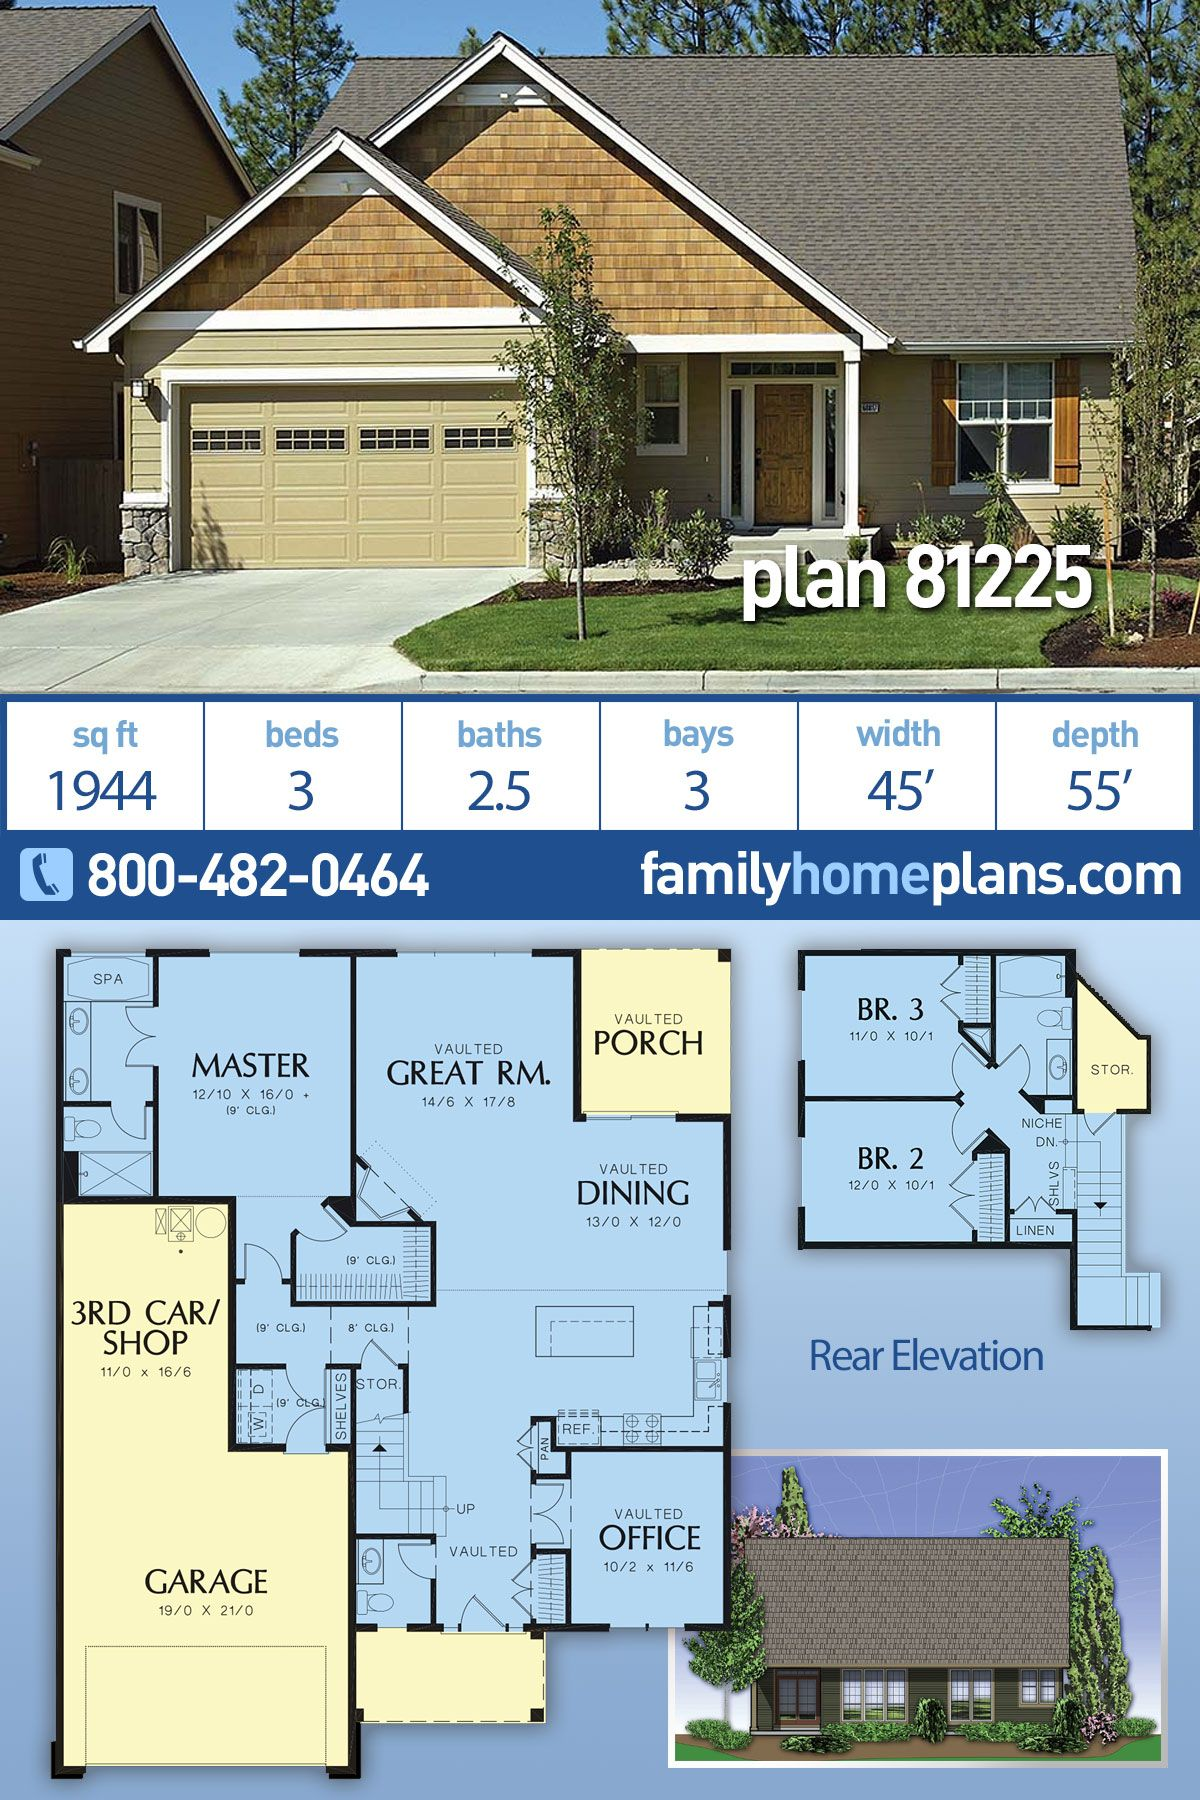 Craftsman Style House Plan 81225 With 3 Bed 3 Bath 3 Car Garage Craftsman Style House Plans Craftsman House Plan Craftsman House